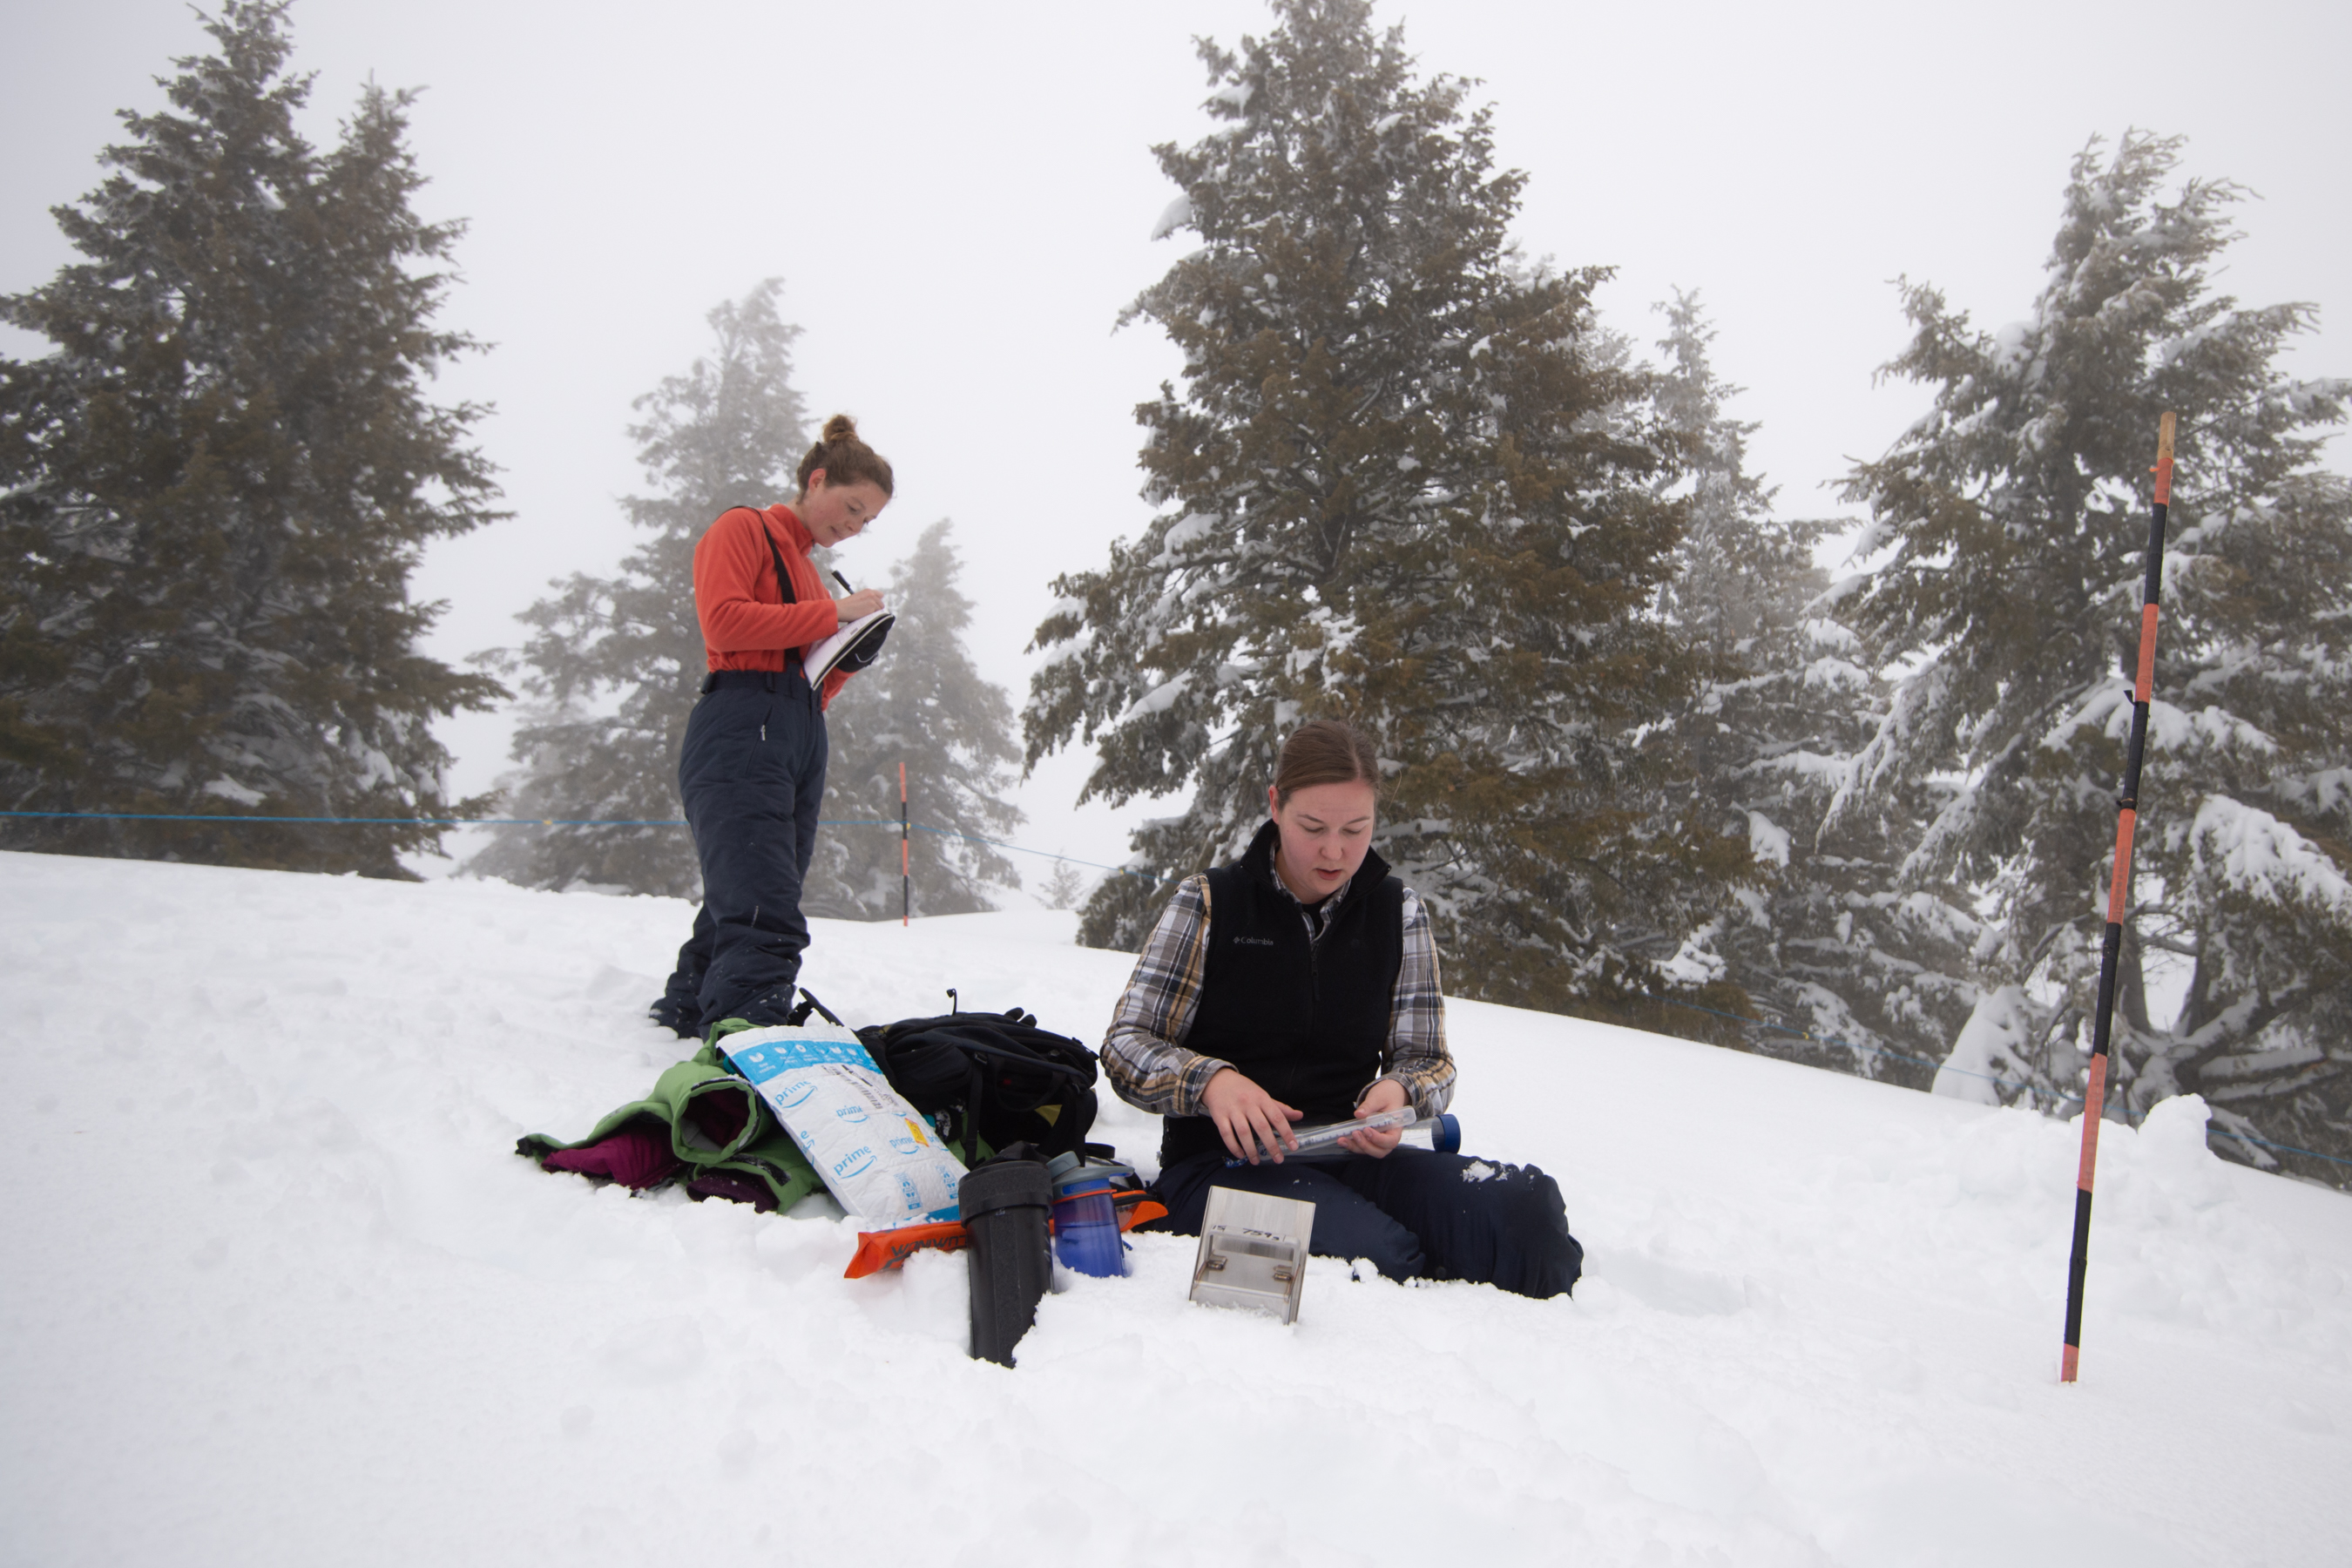 Two student conduct research on snowy mountain